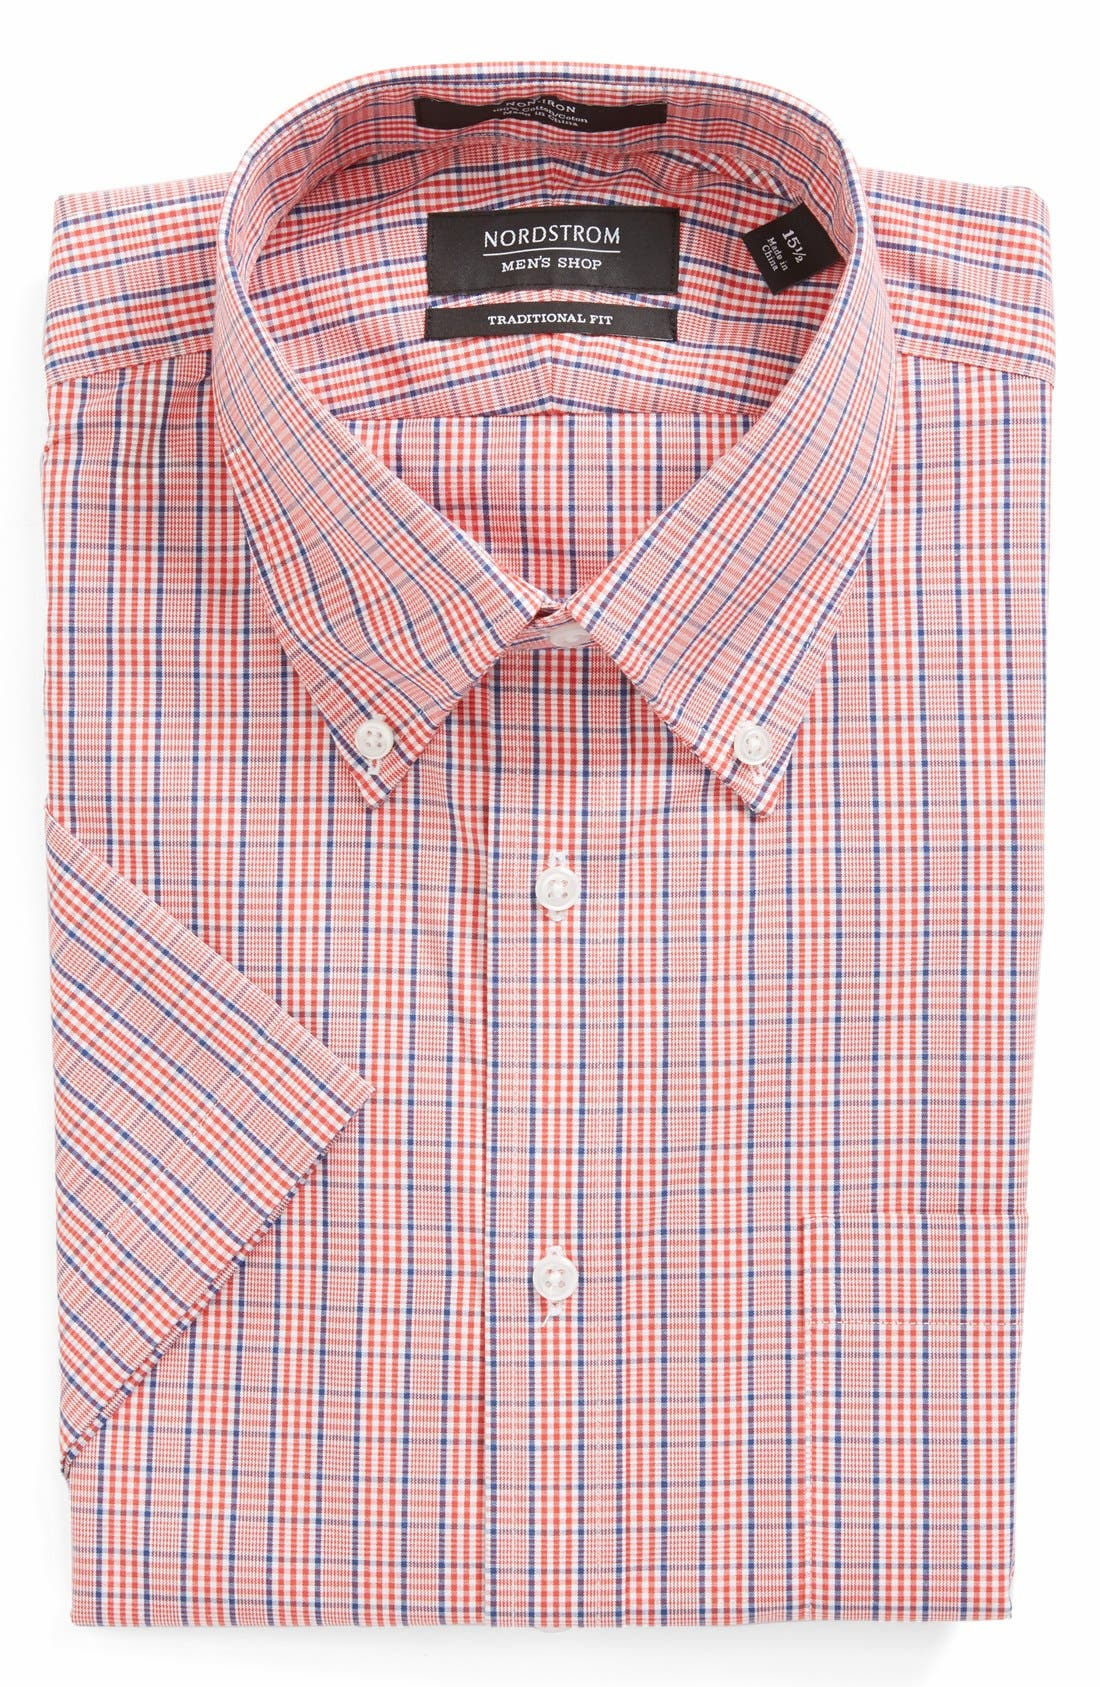 Alternate Image 1 Selected - Nordstrom Traditional Fit Non-Iron Short Sleeve Dress Shirt